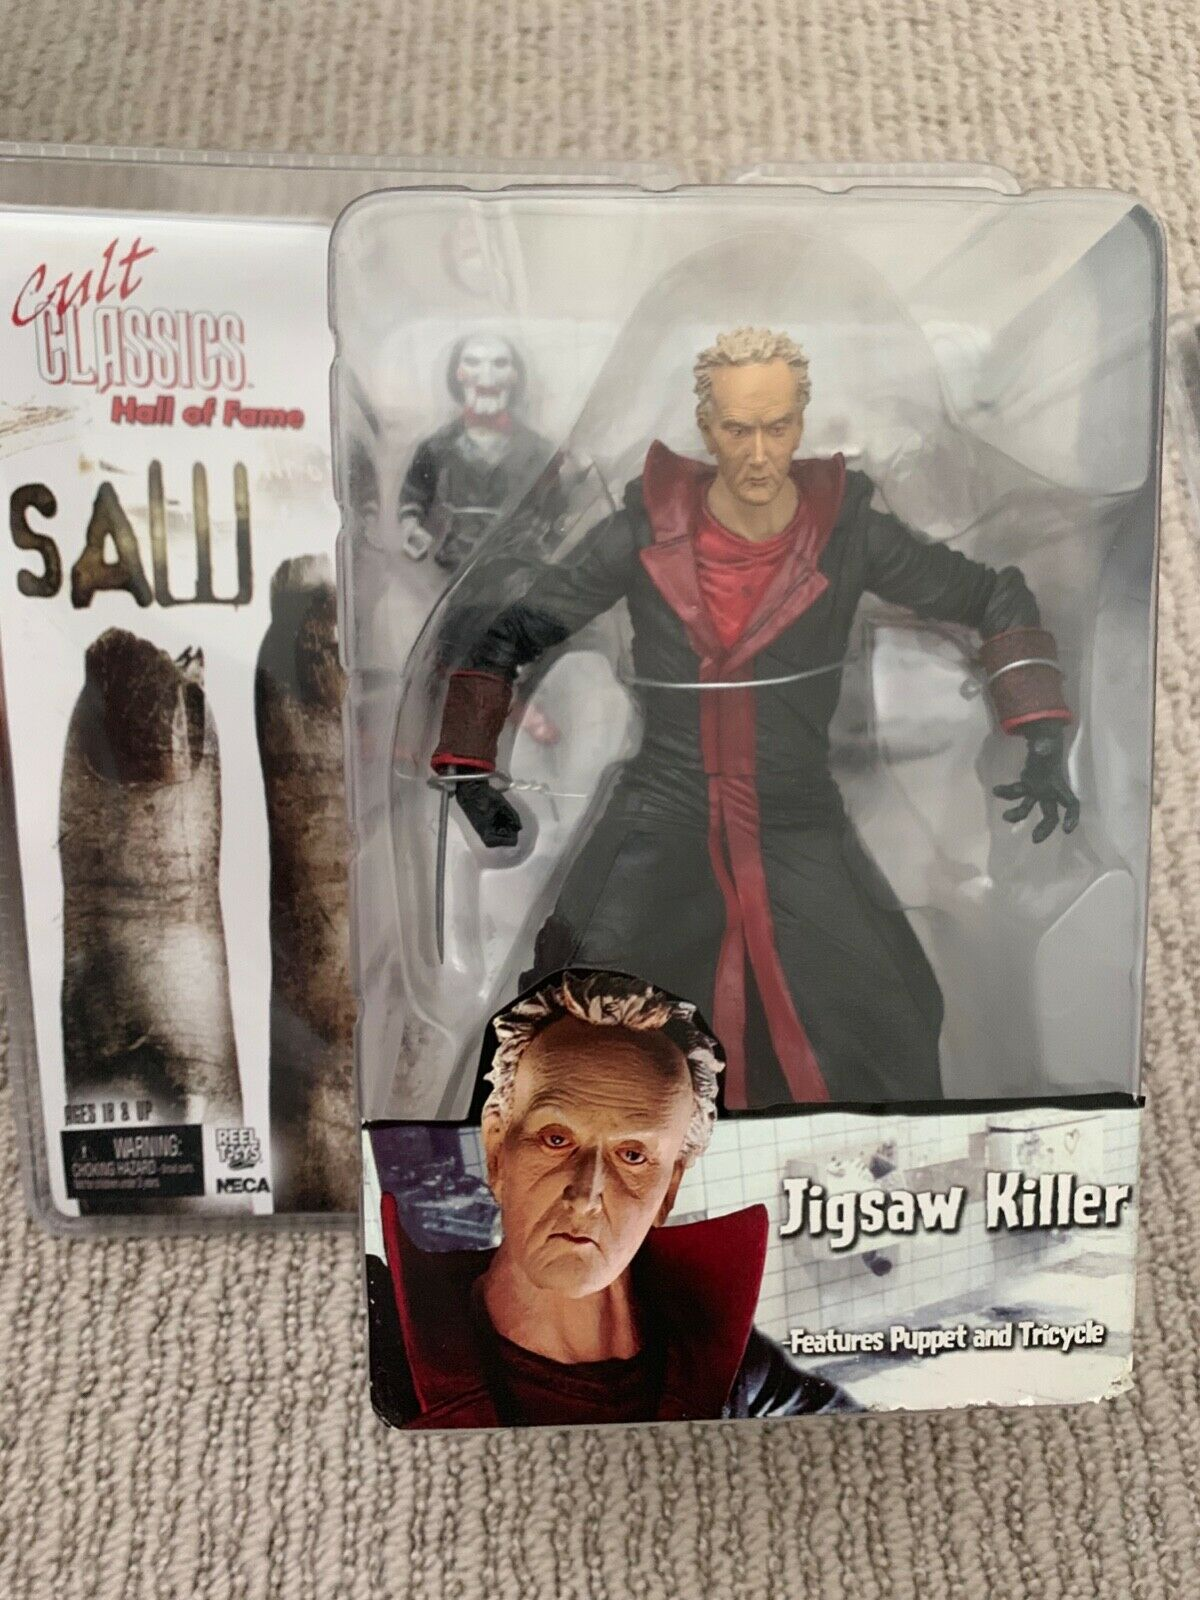 SAW  Jigsaw Killer Htutti Of Fame Cult classeics cifra by NECA